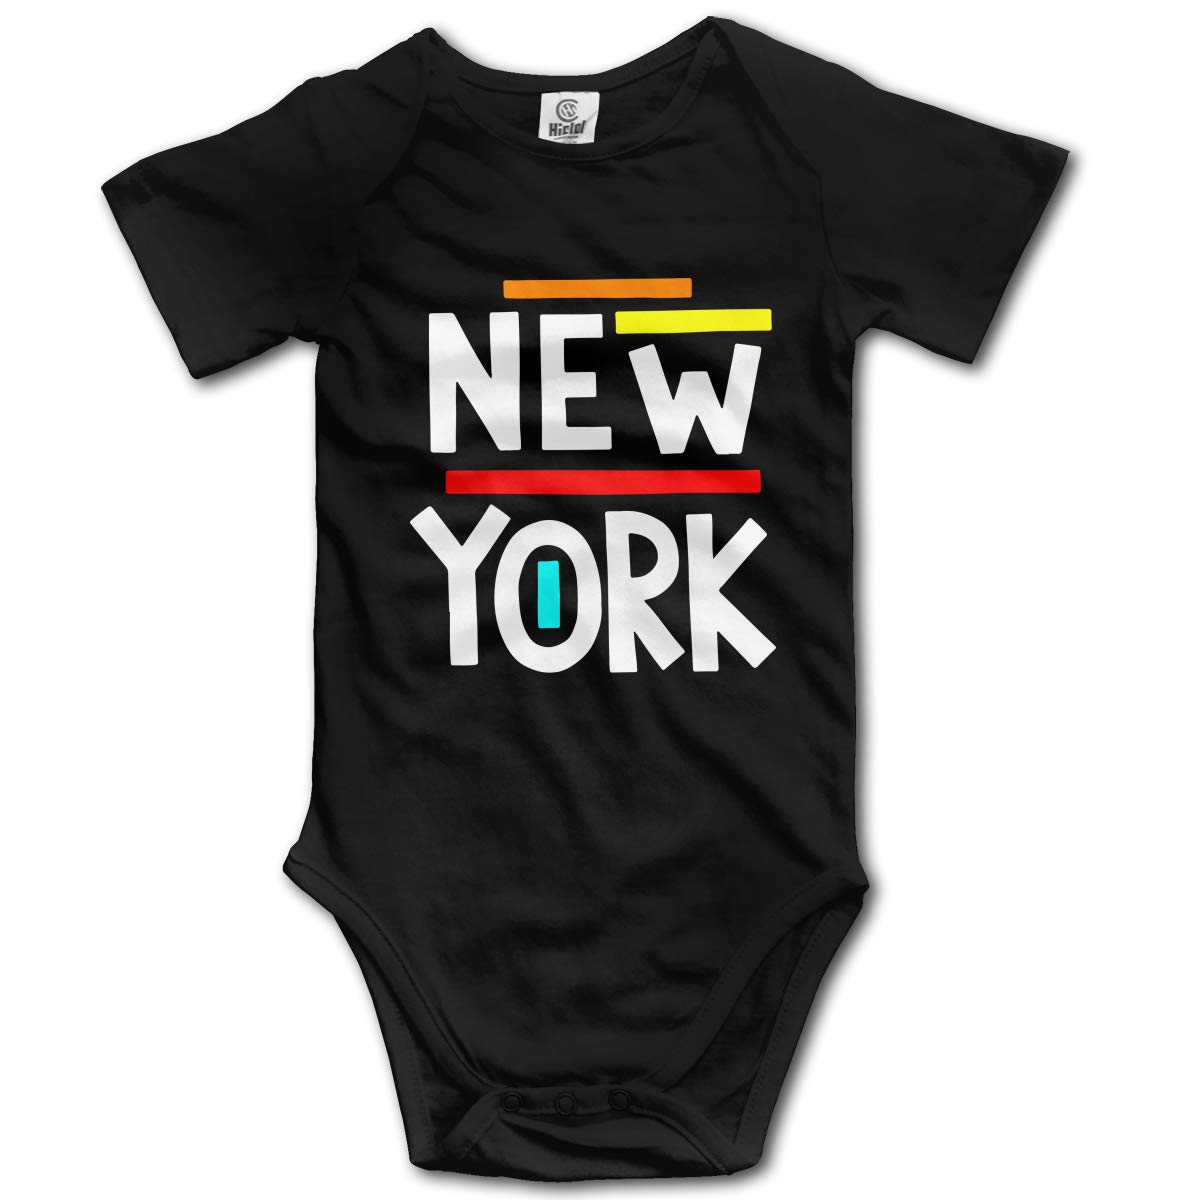 New York Suit 6-24 Months Baby Short Sleeve Baby Clothes Climbing Clothes